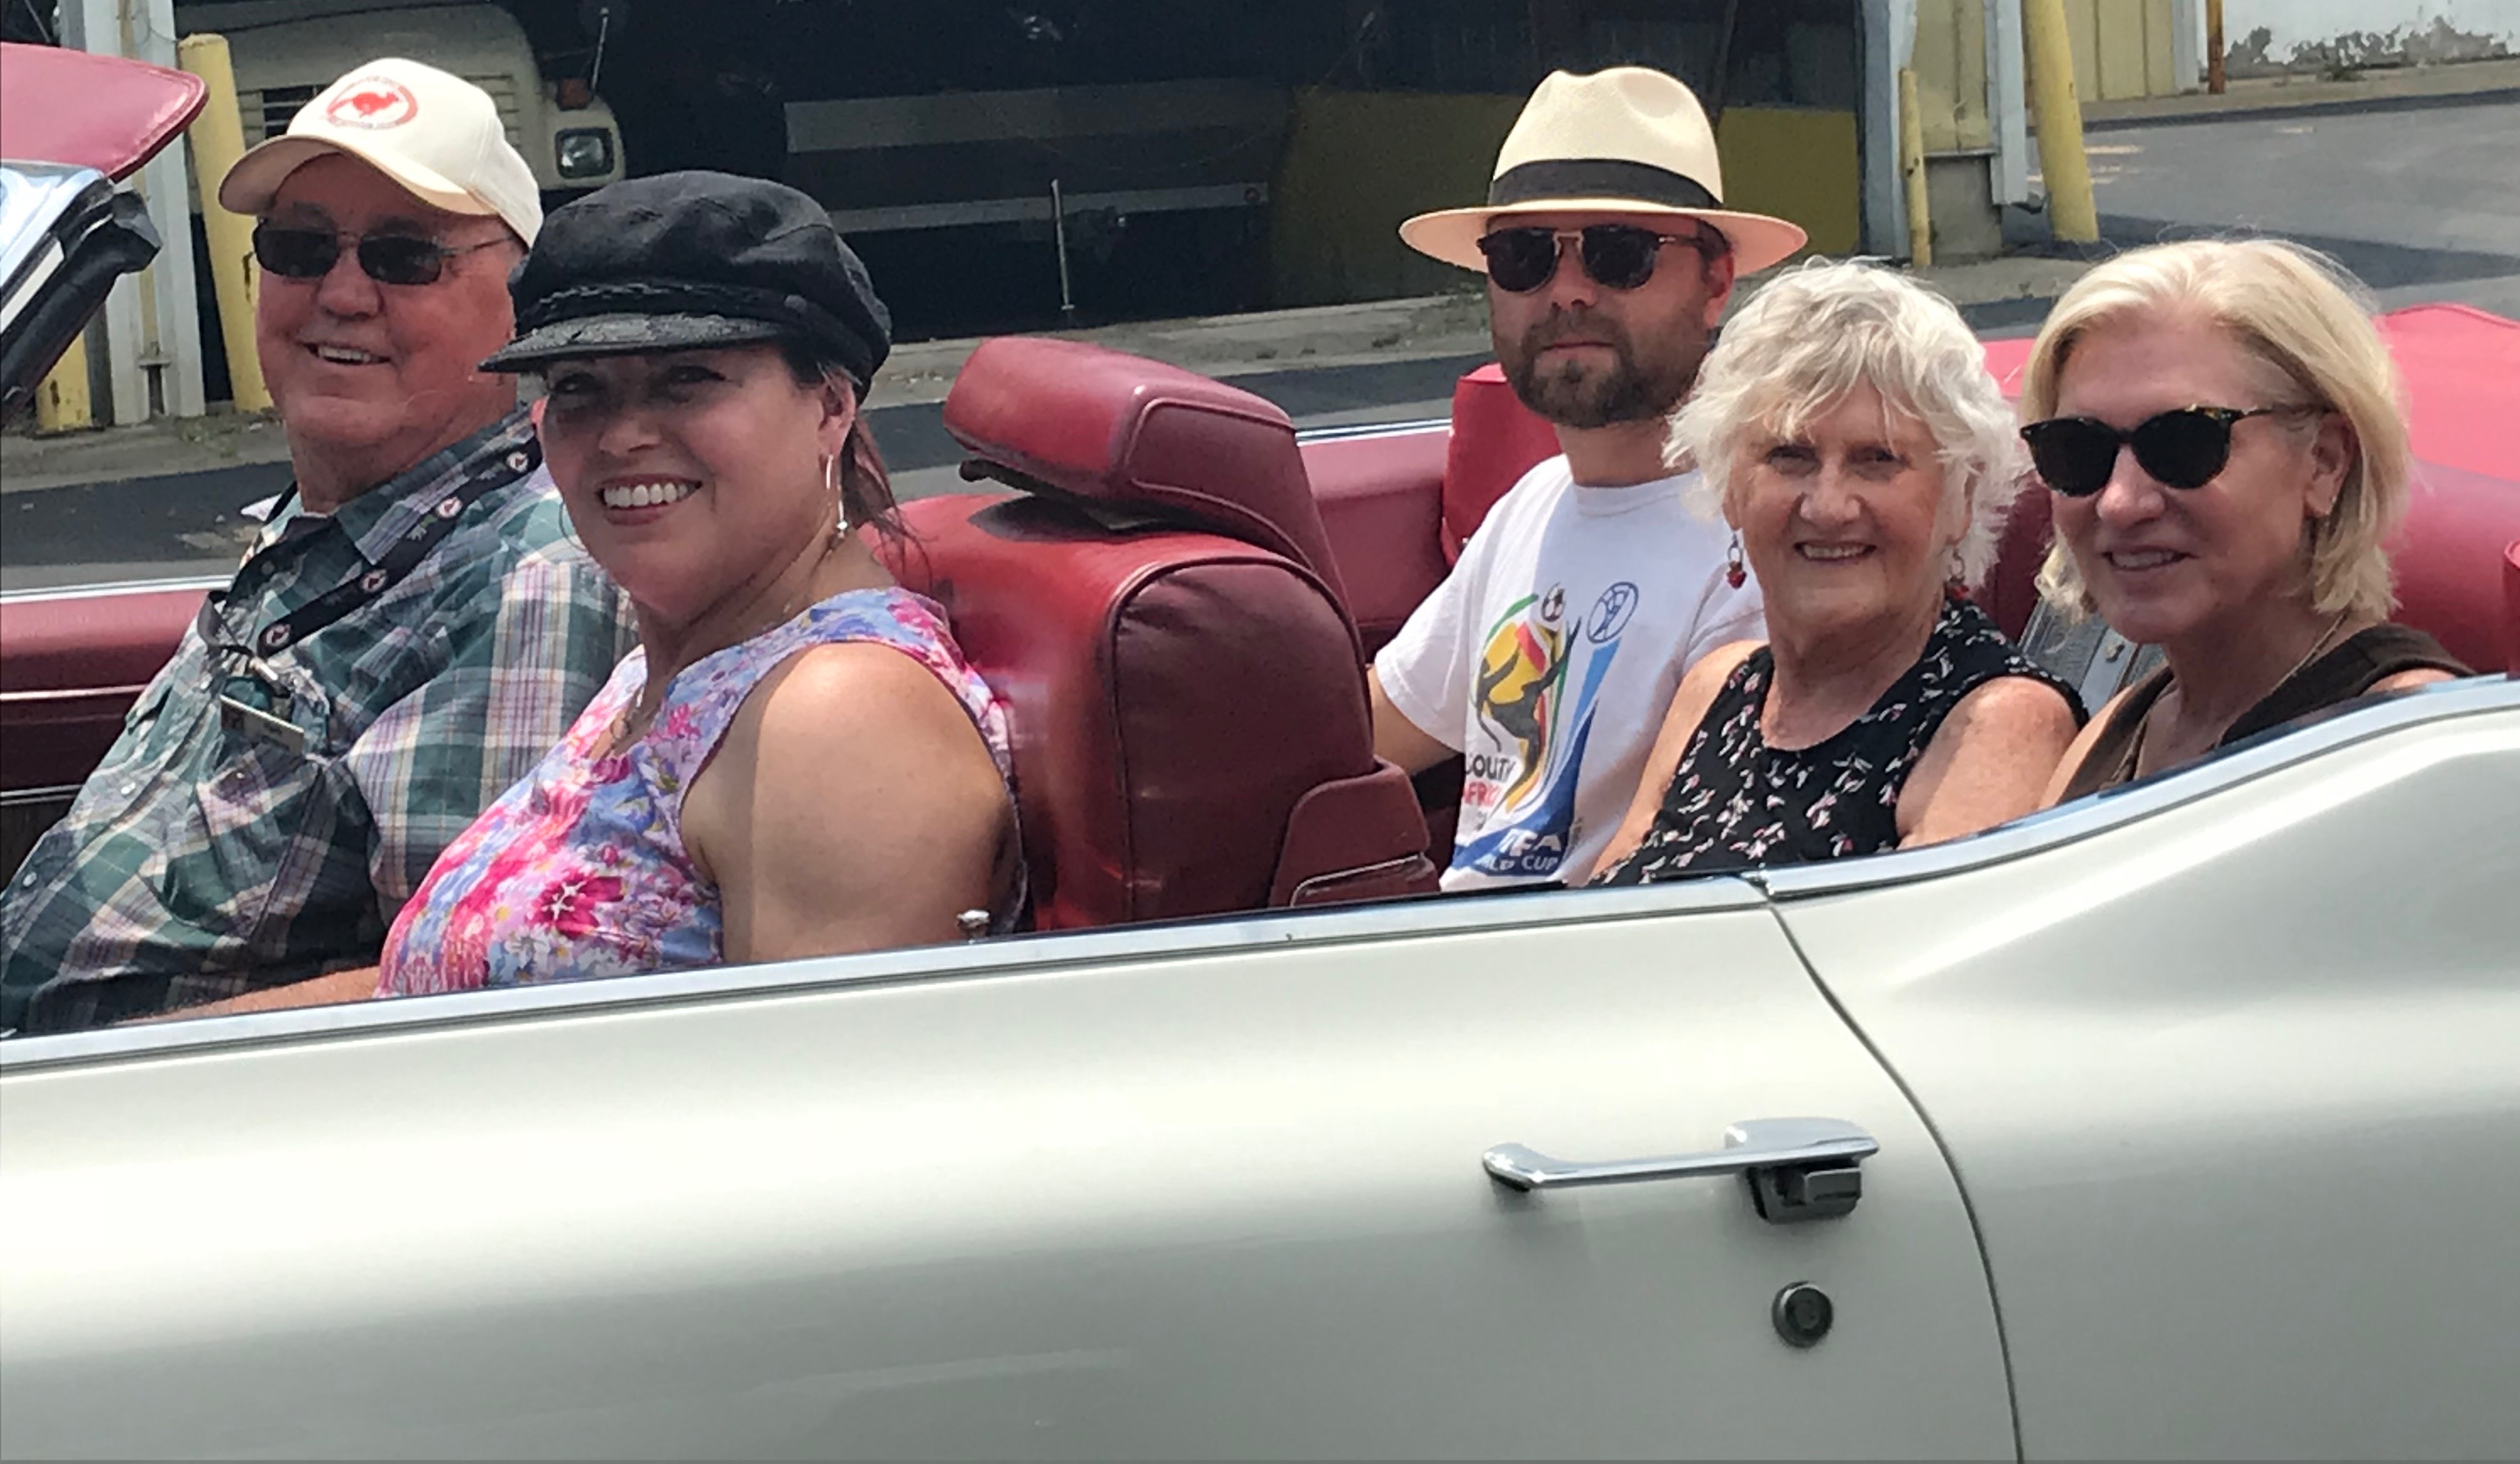 Senior Wishes Grants 150th Wish with a Vintage  Car Ride!